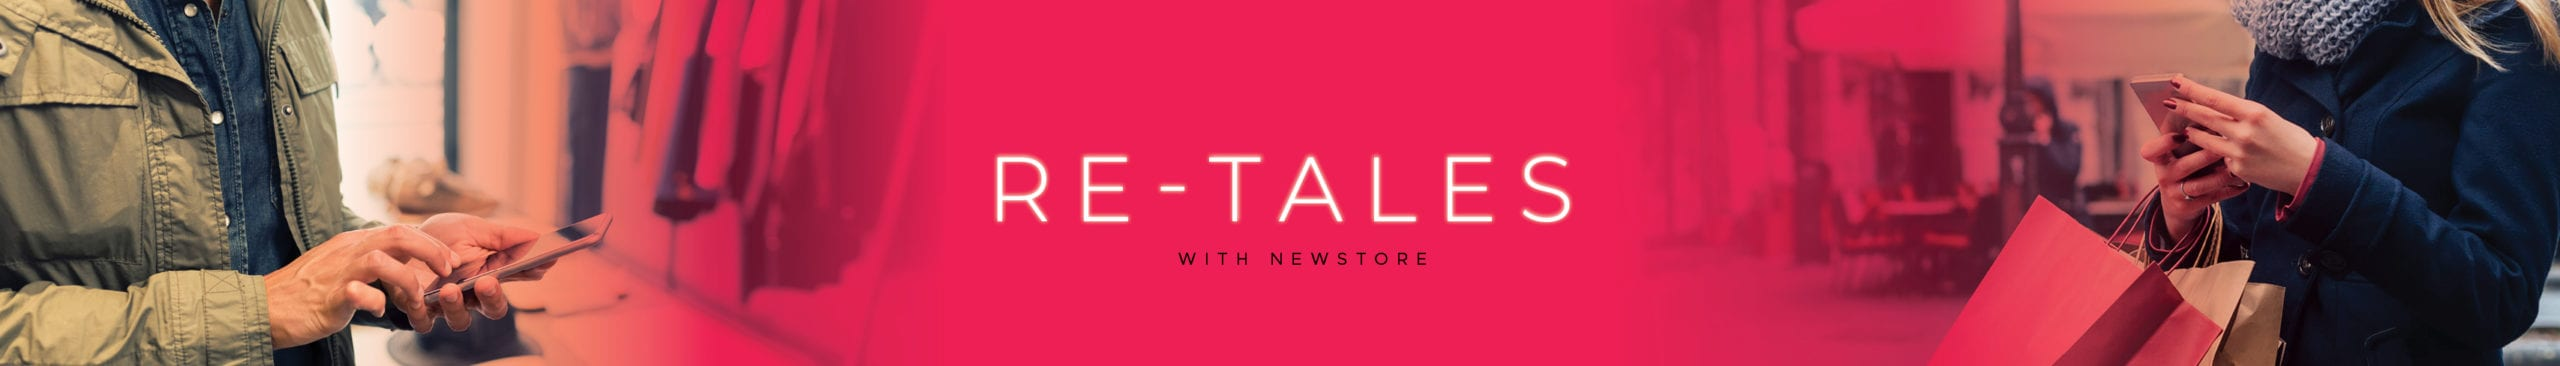 retales with newstore banner